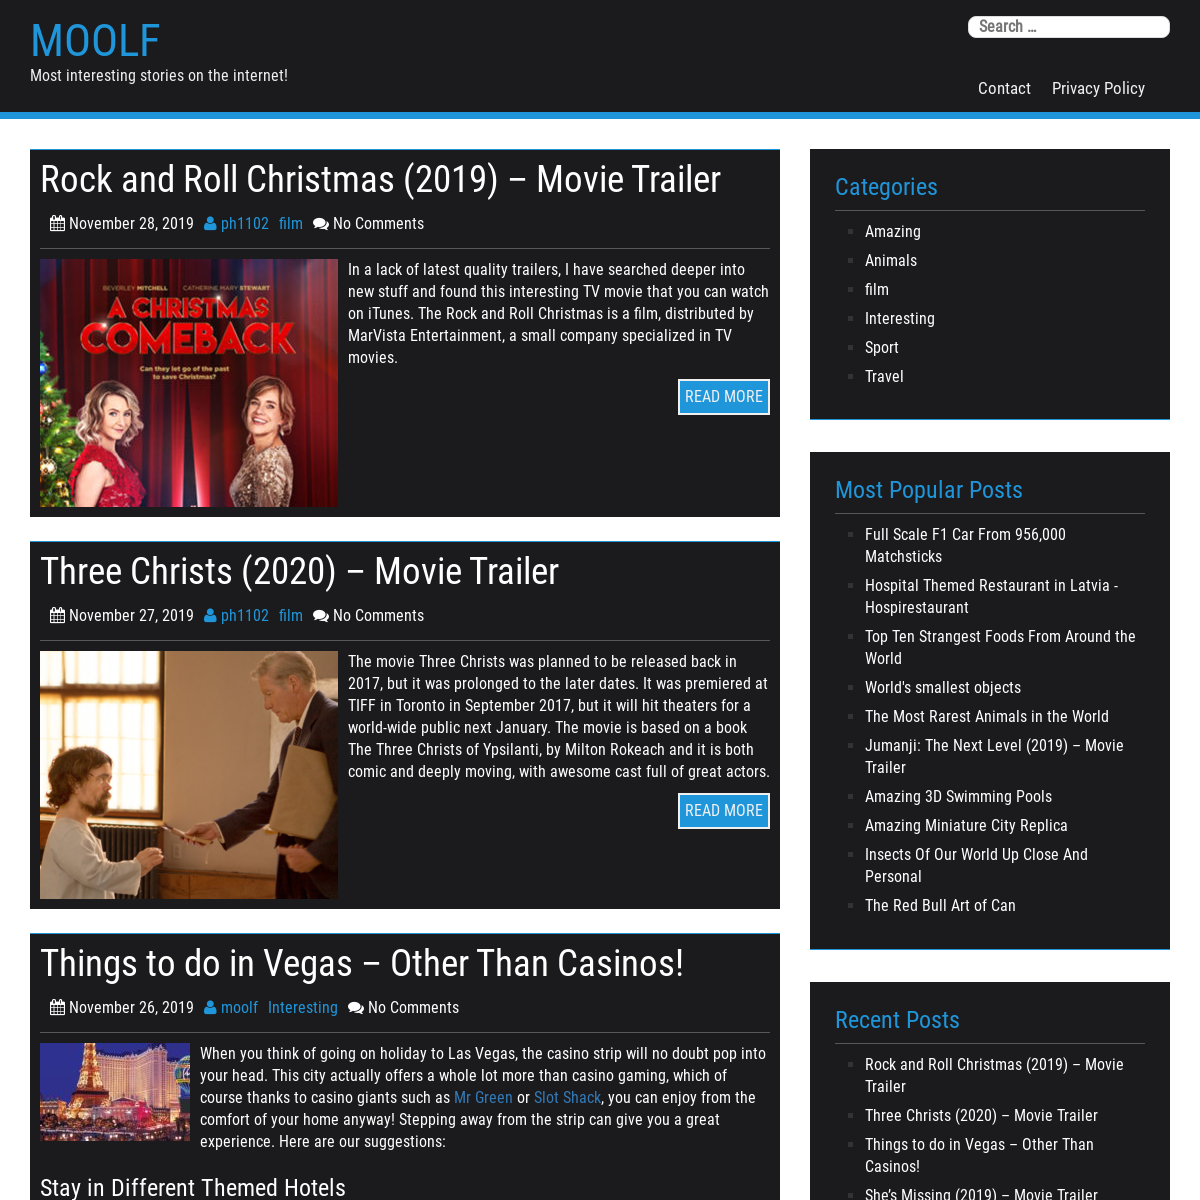 Moolf – Most interesting stories on the internet!